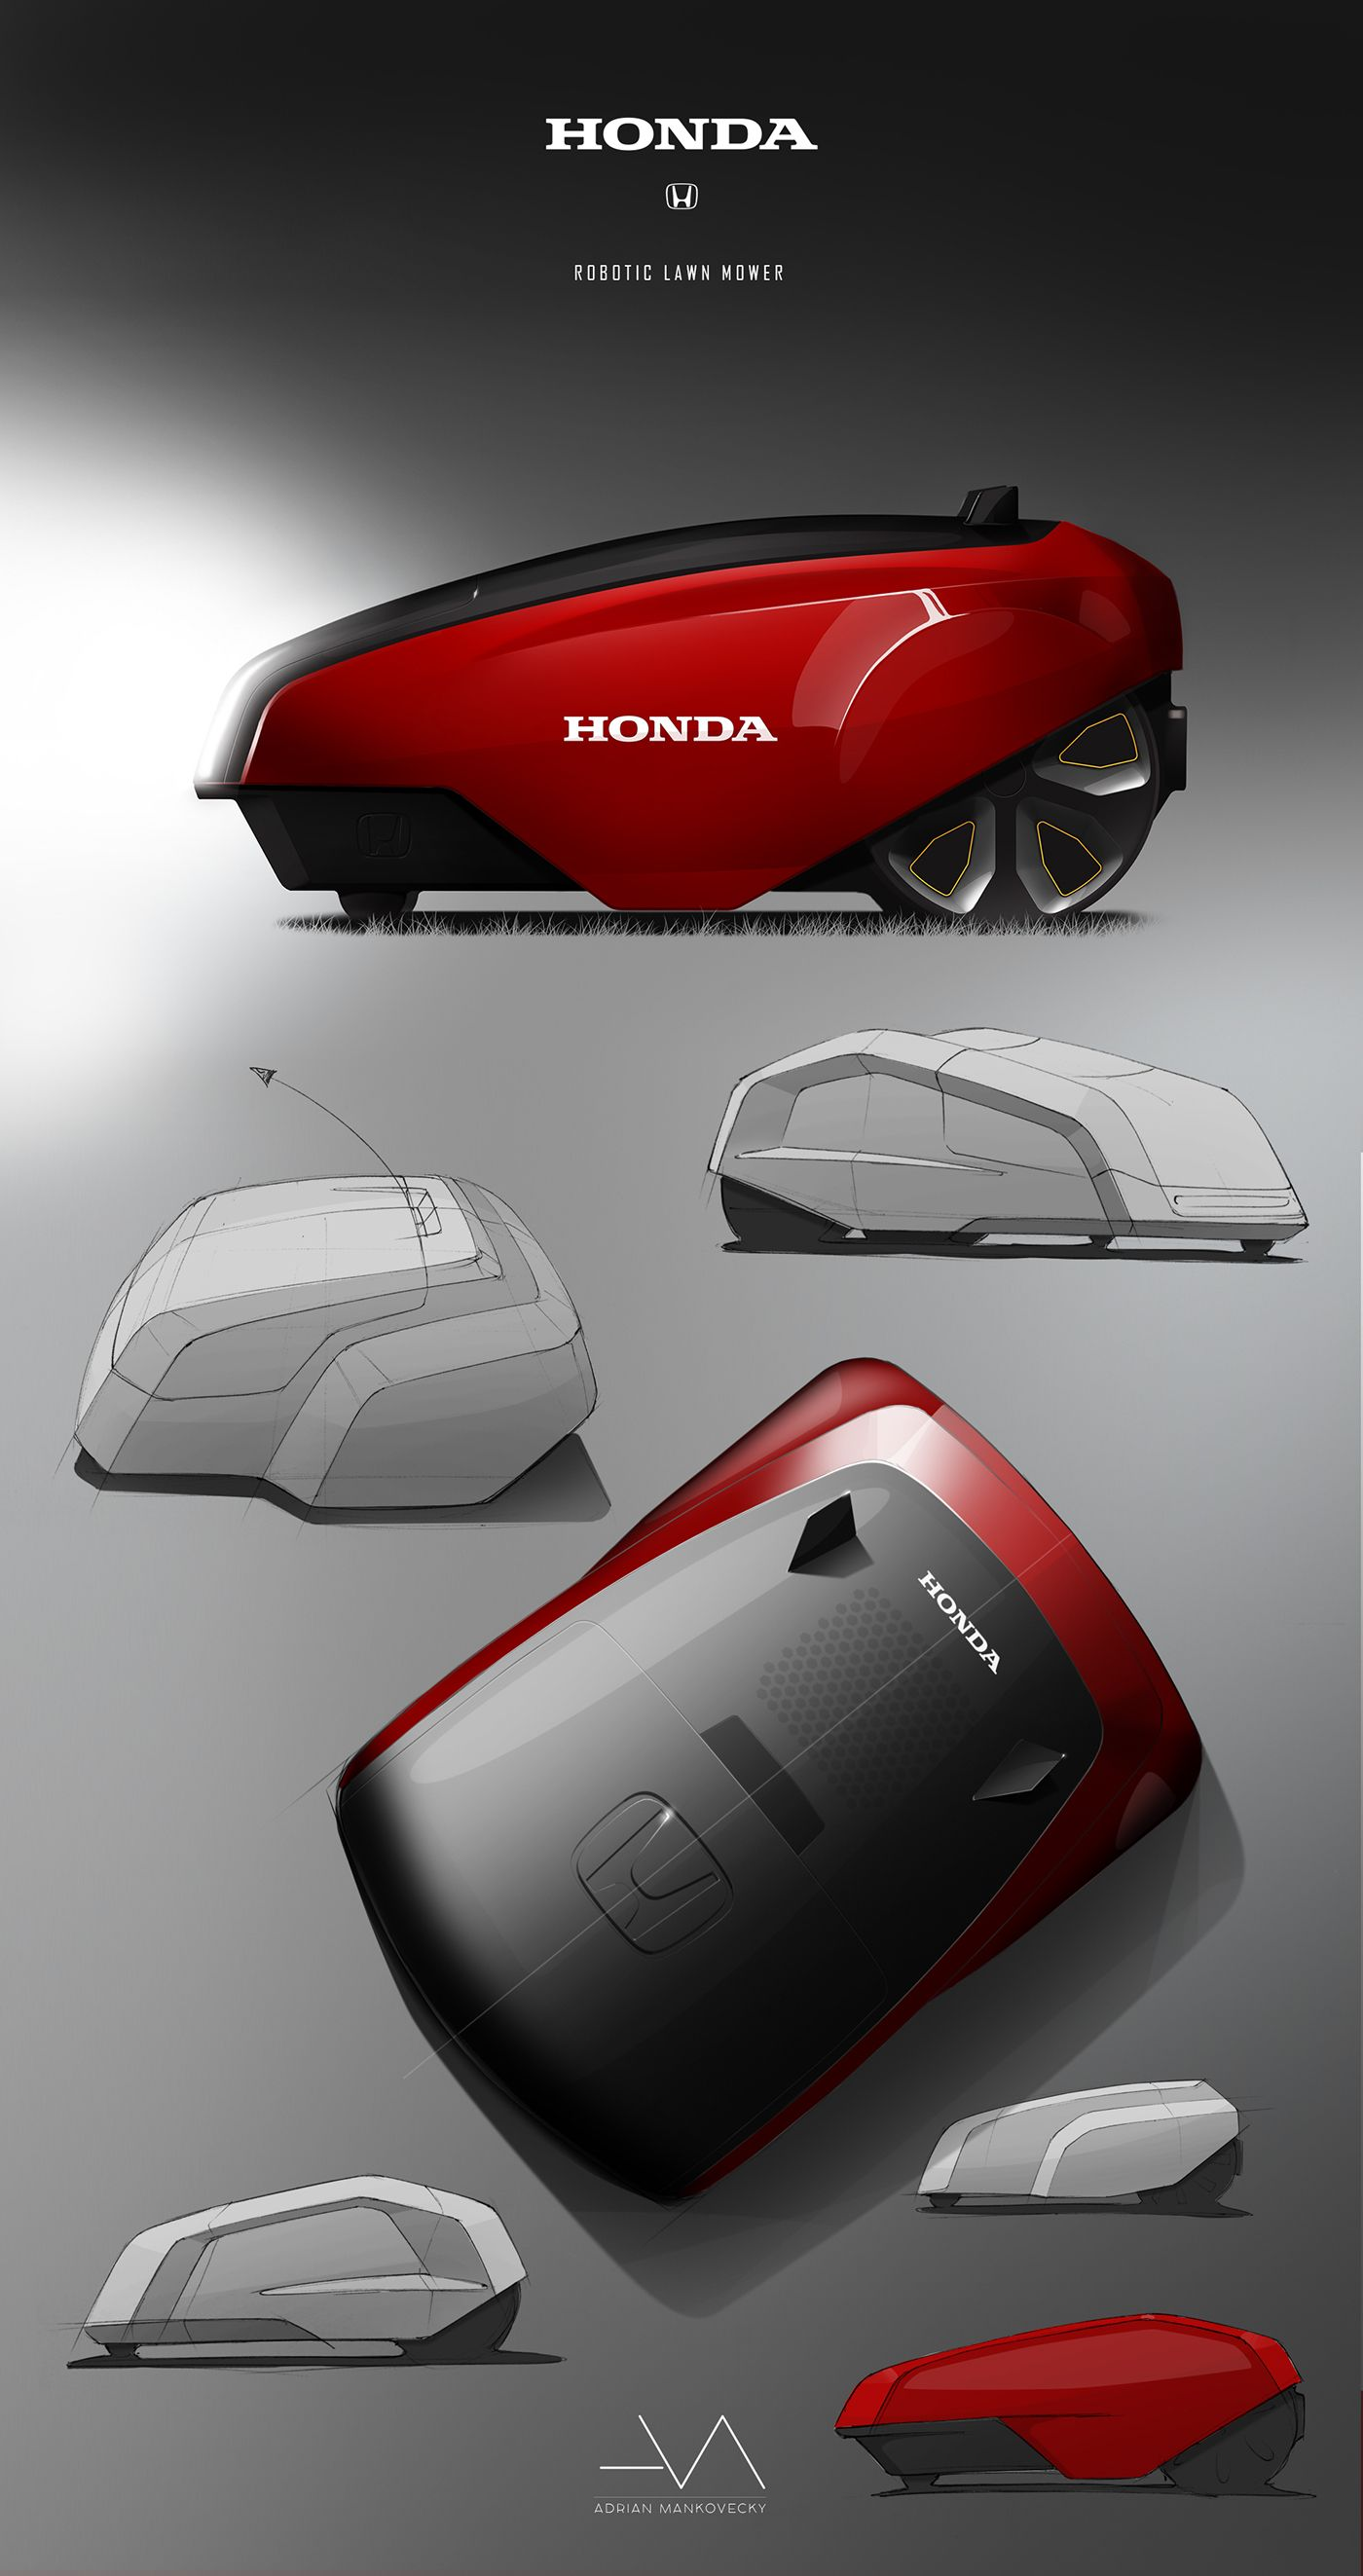 honda robotic lawn mower on behance productshowlayout. Black Bedroom Furniture Sets. Home Design Ideas